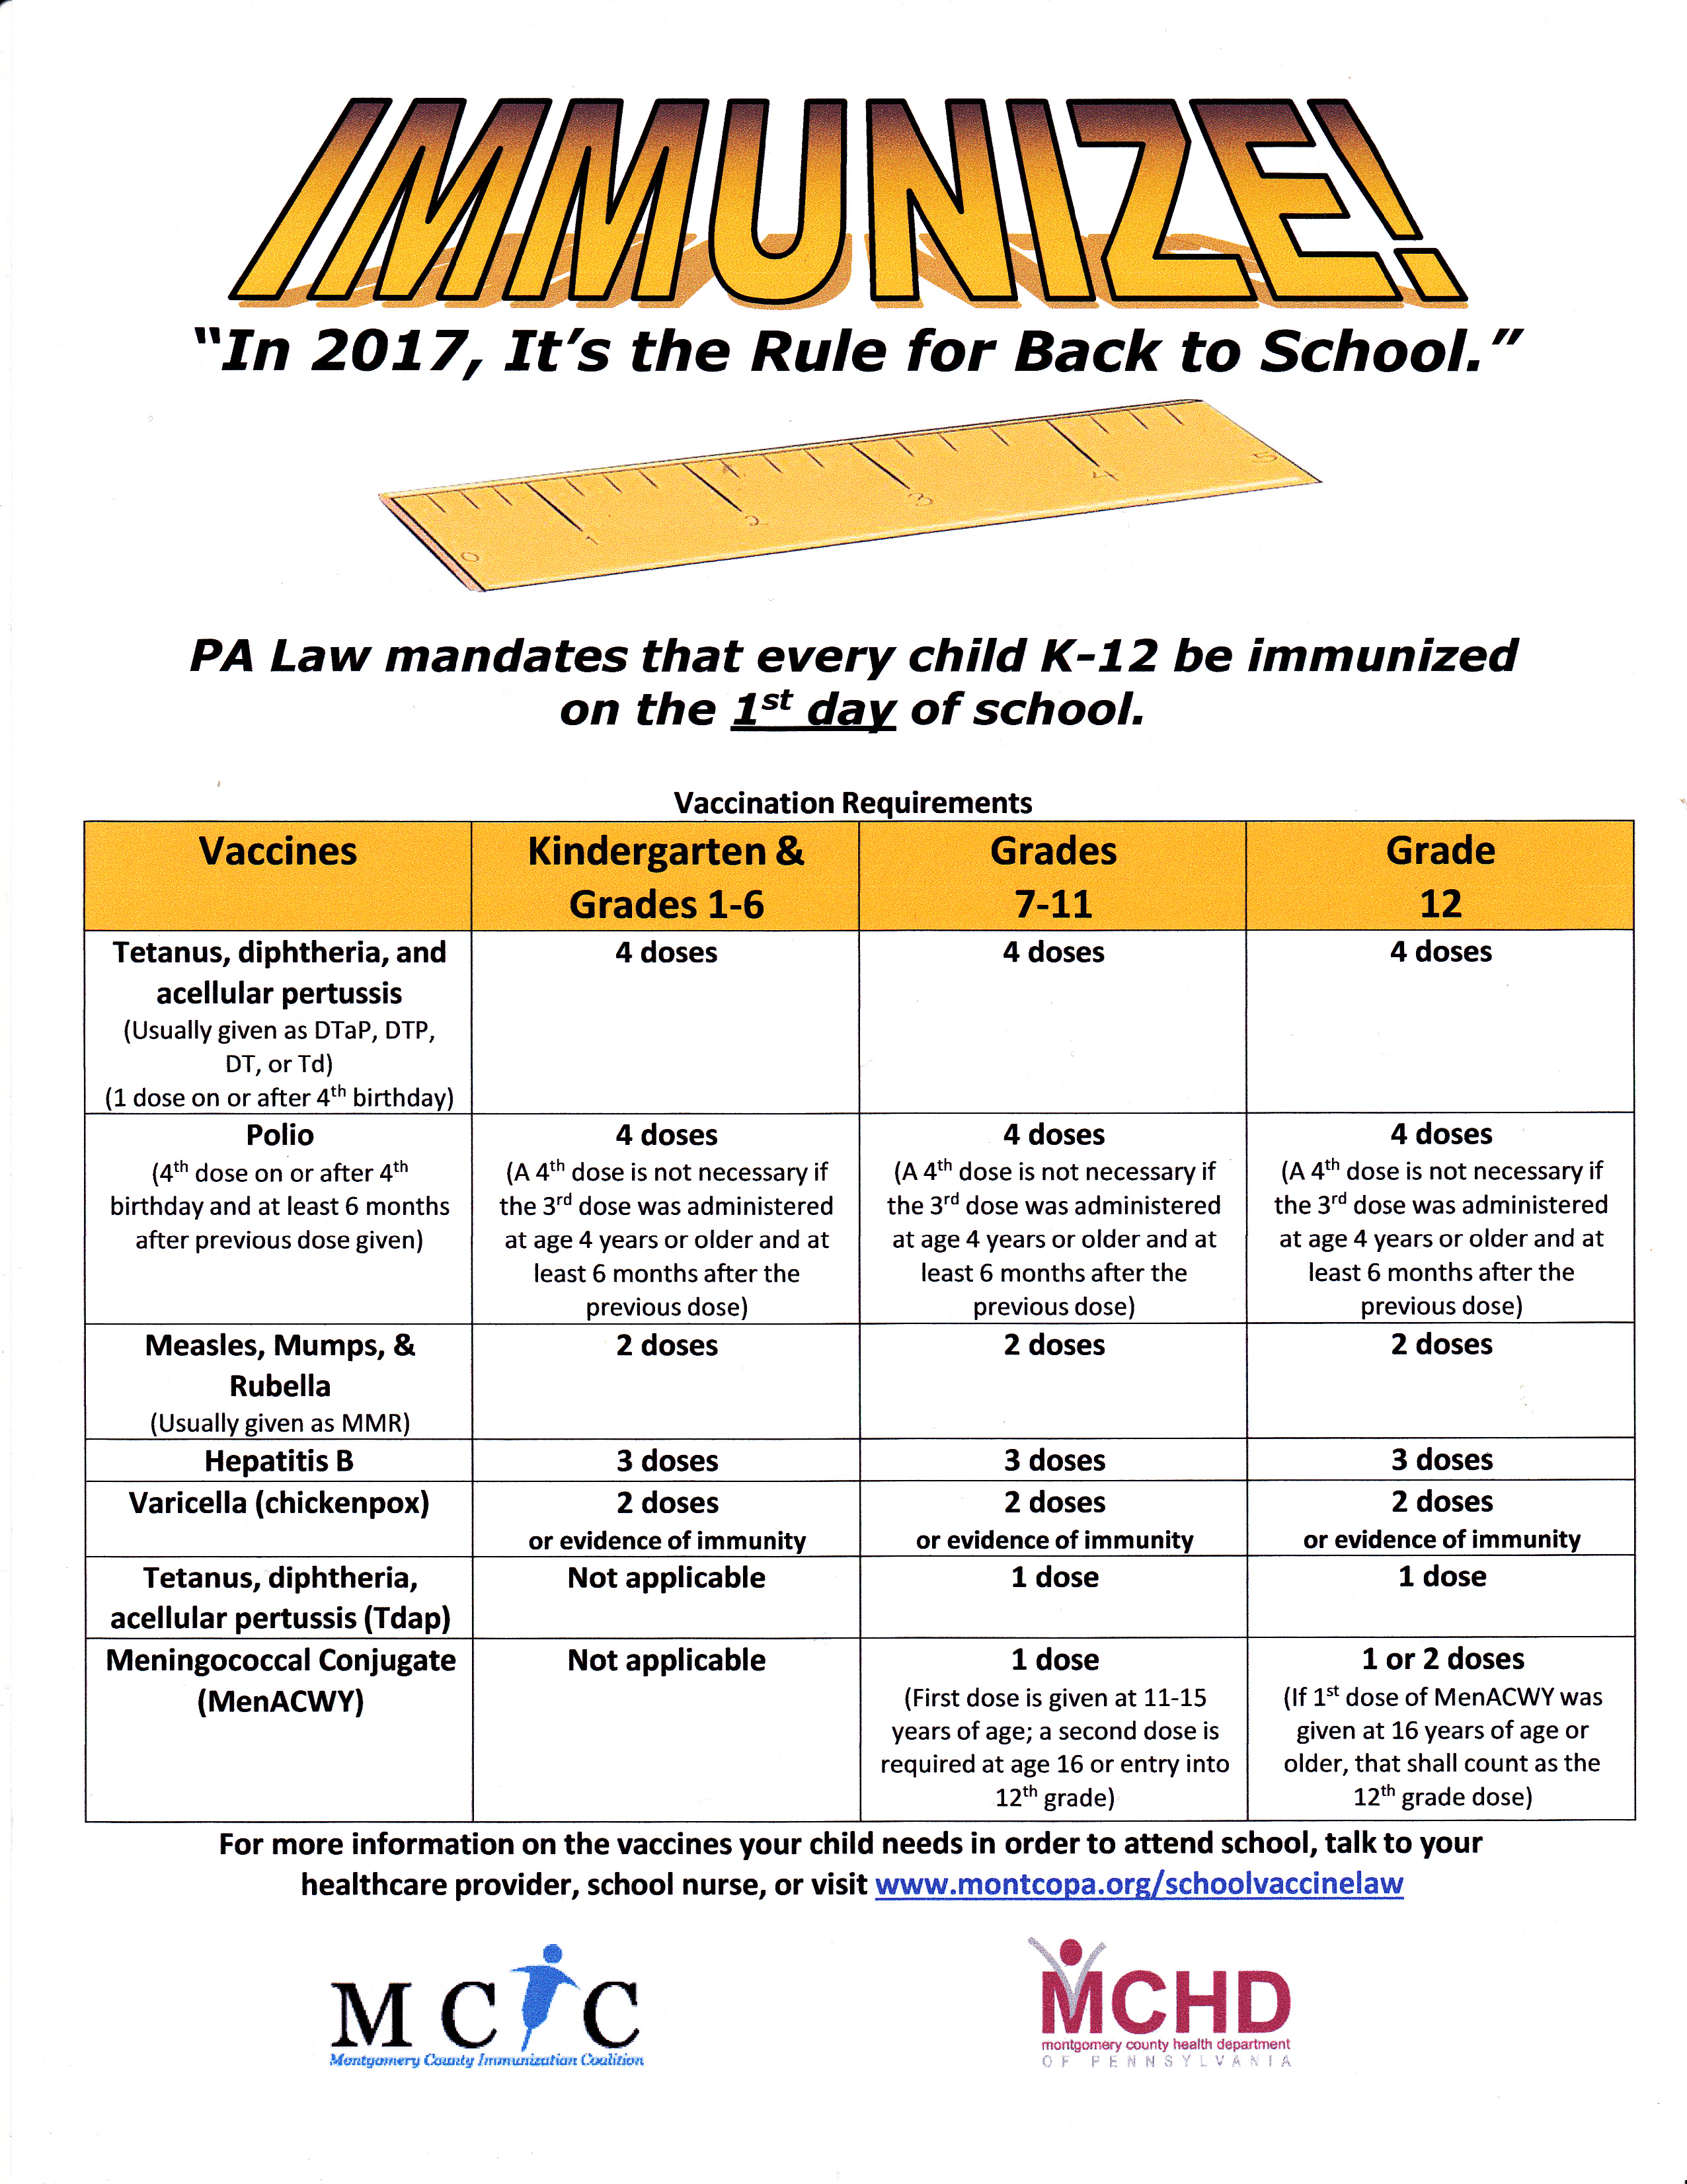 Chart regarding immunization regulations for 2017-18 school year. Click for story with accessible verion of chart.